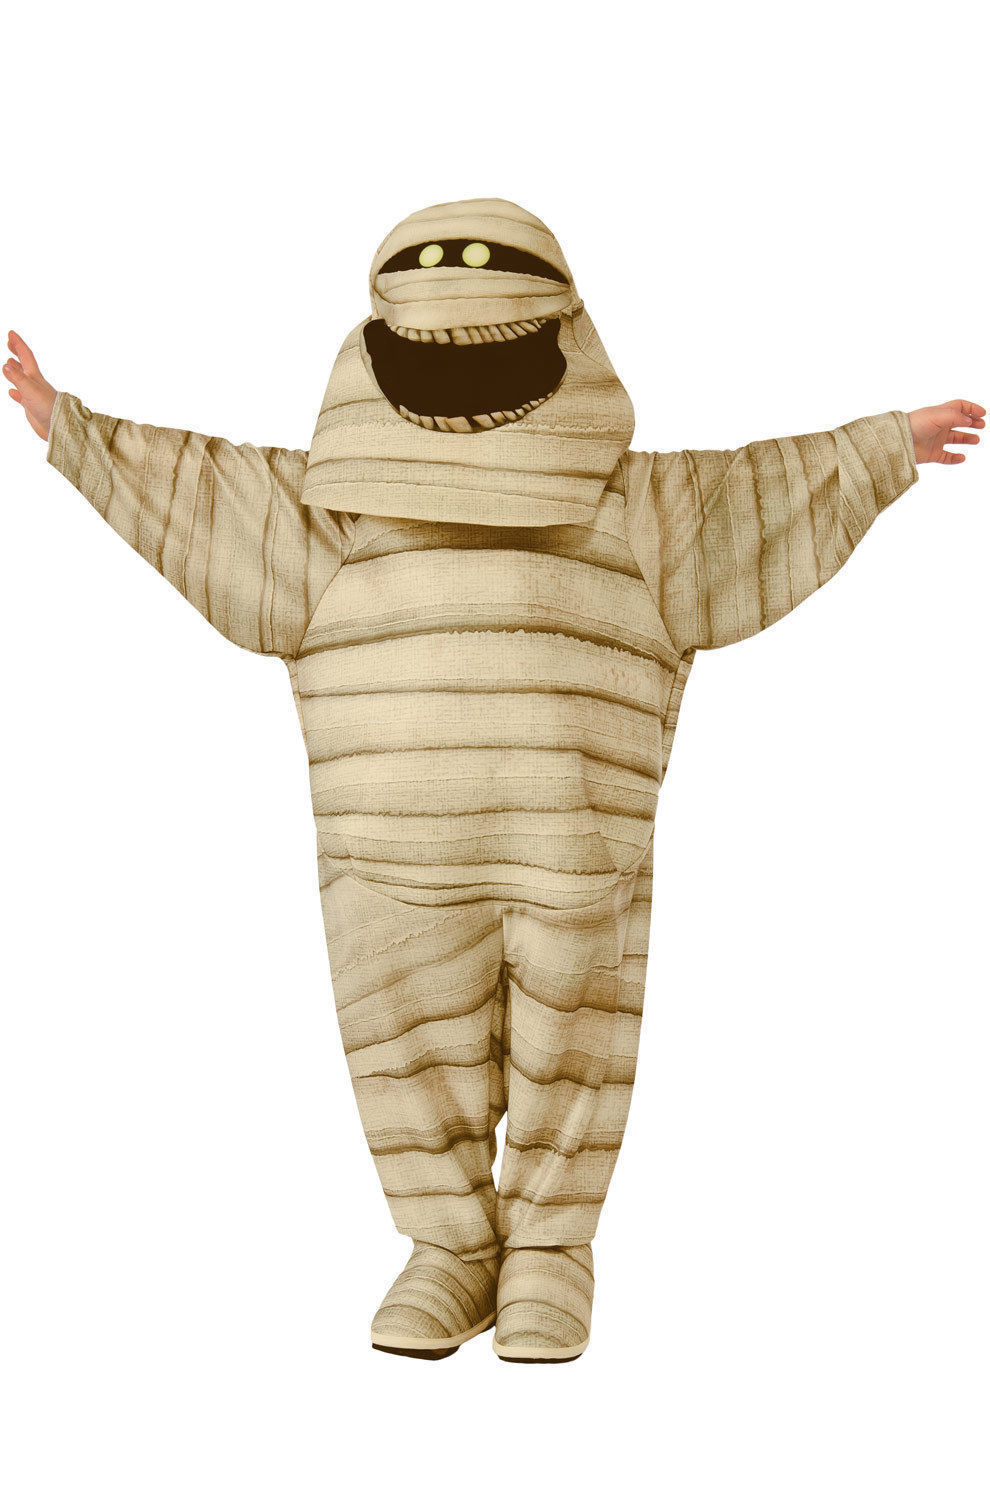 Primary image for Hotel Transylvania Murray The Mummy Child Halloween Costume Free Shipping